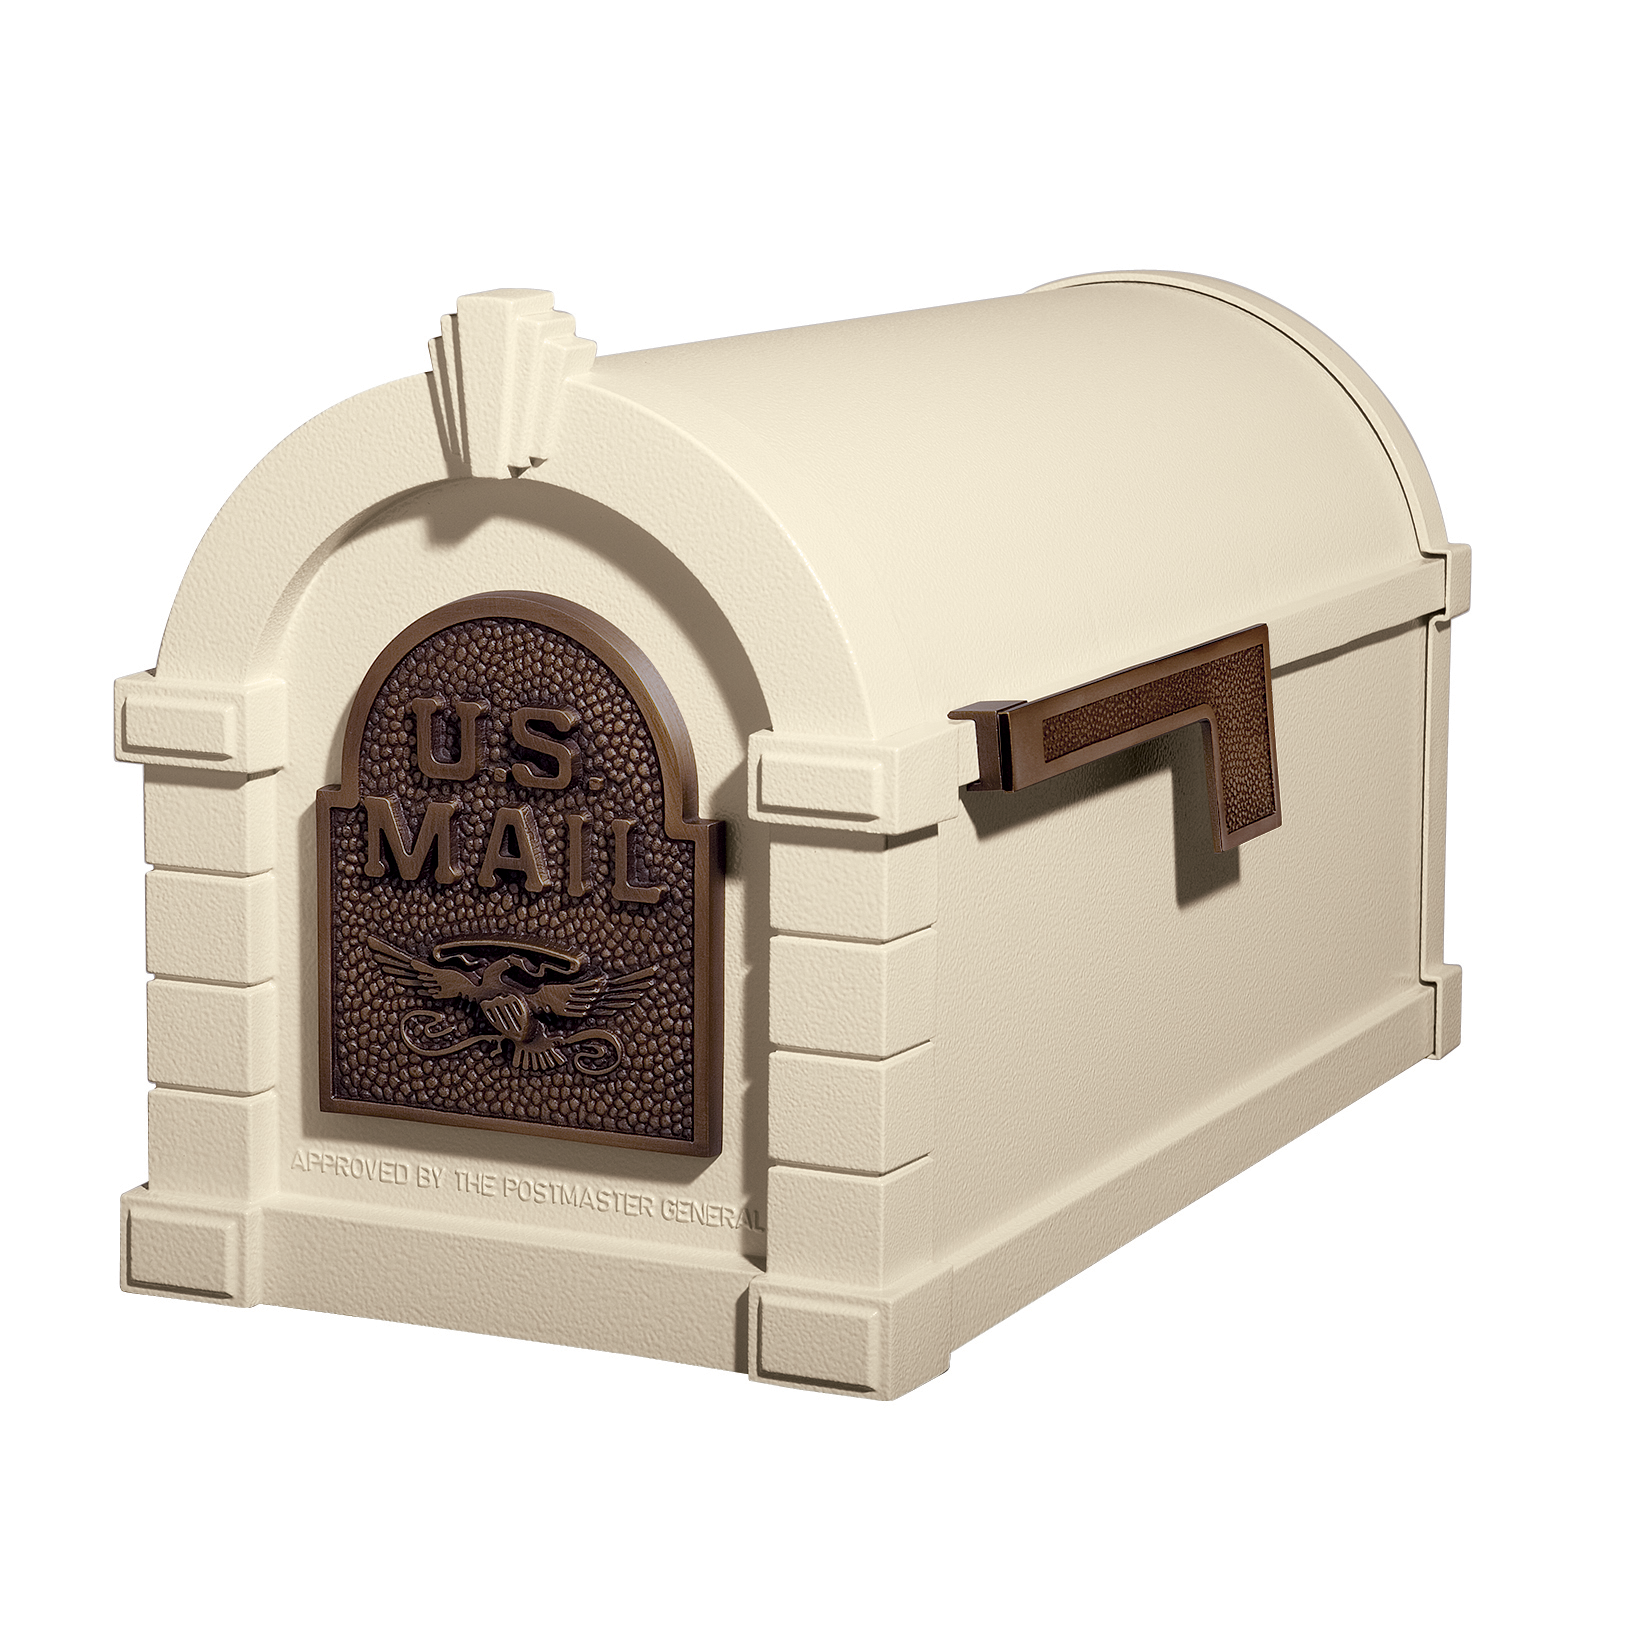 Gaines Eagle Keystone MailboxesAlmond with Antique Bronze